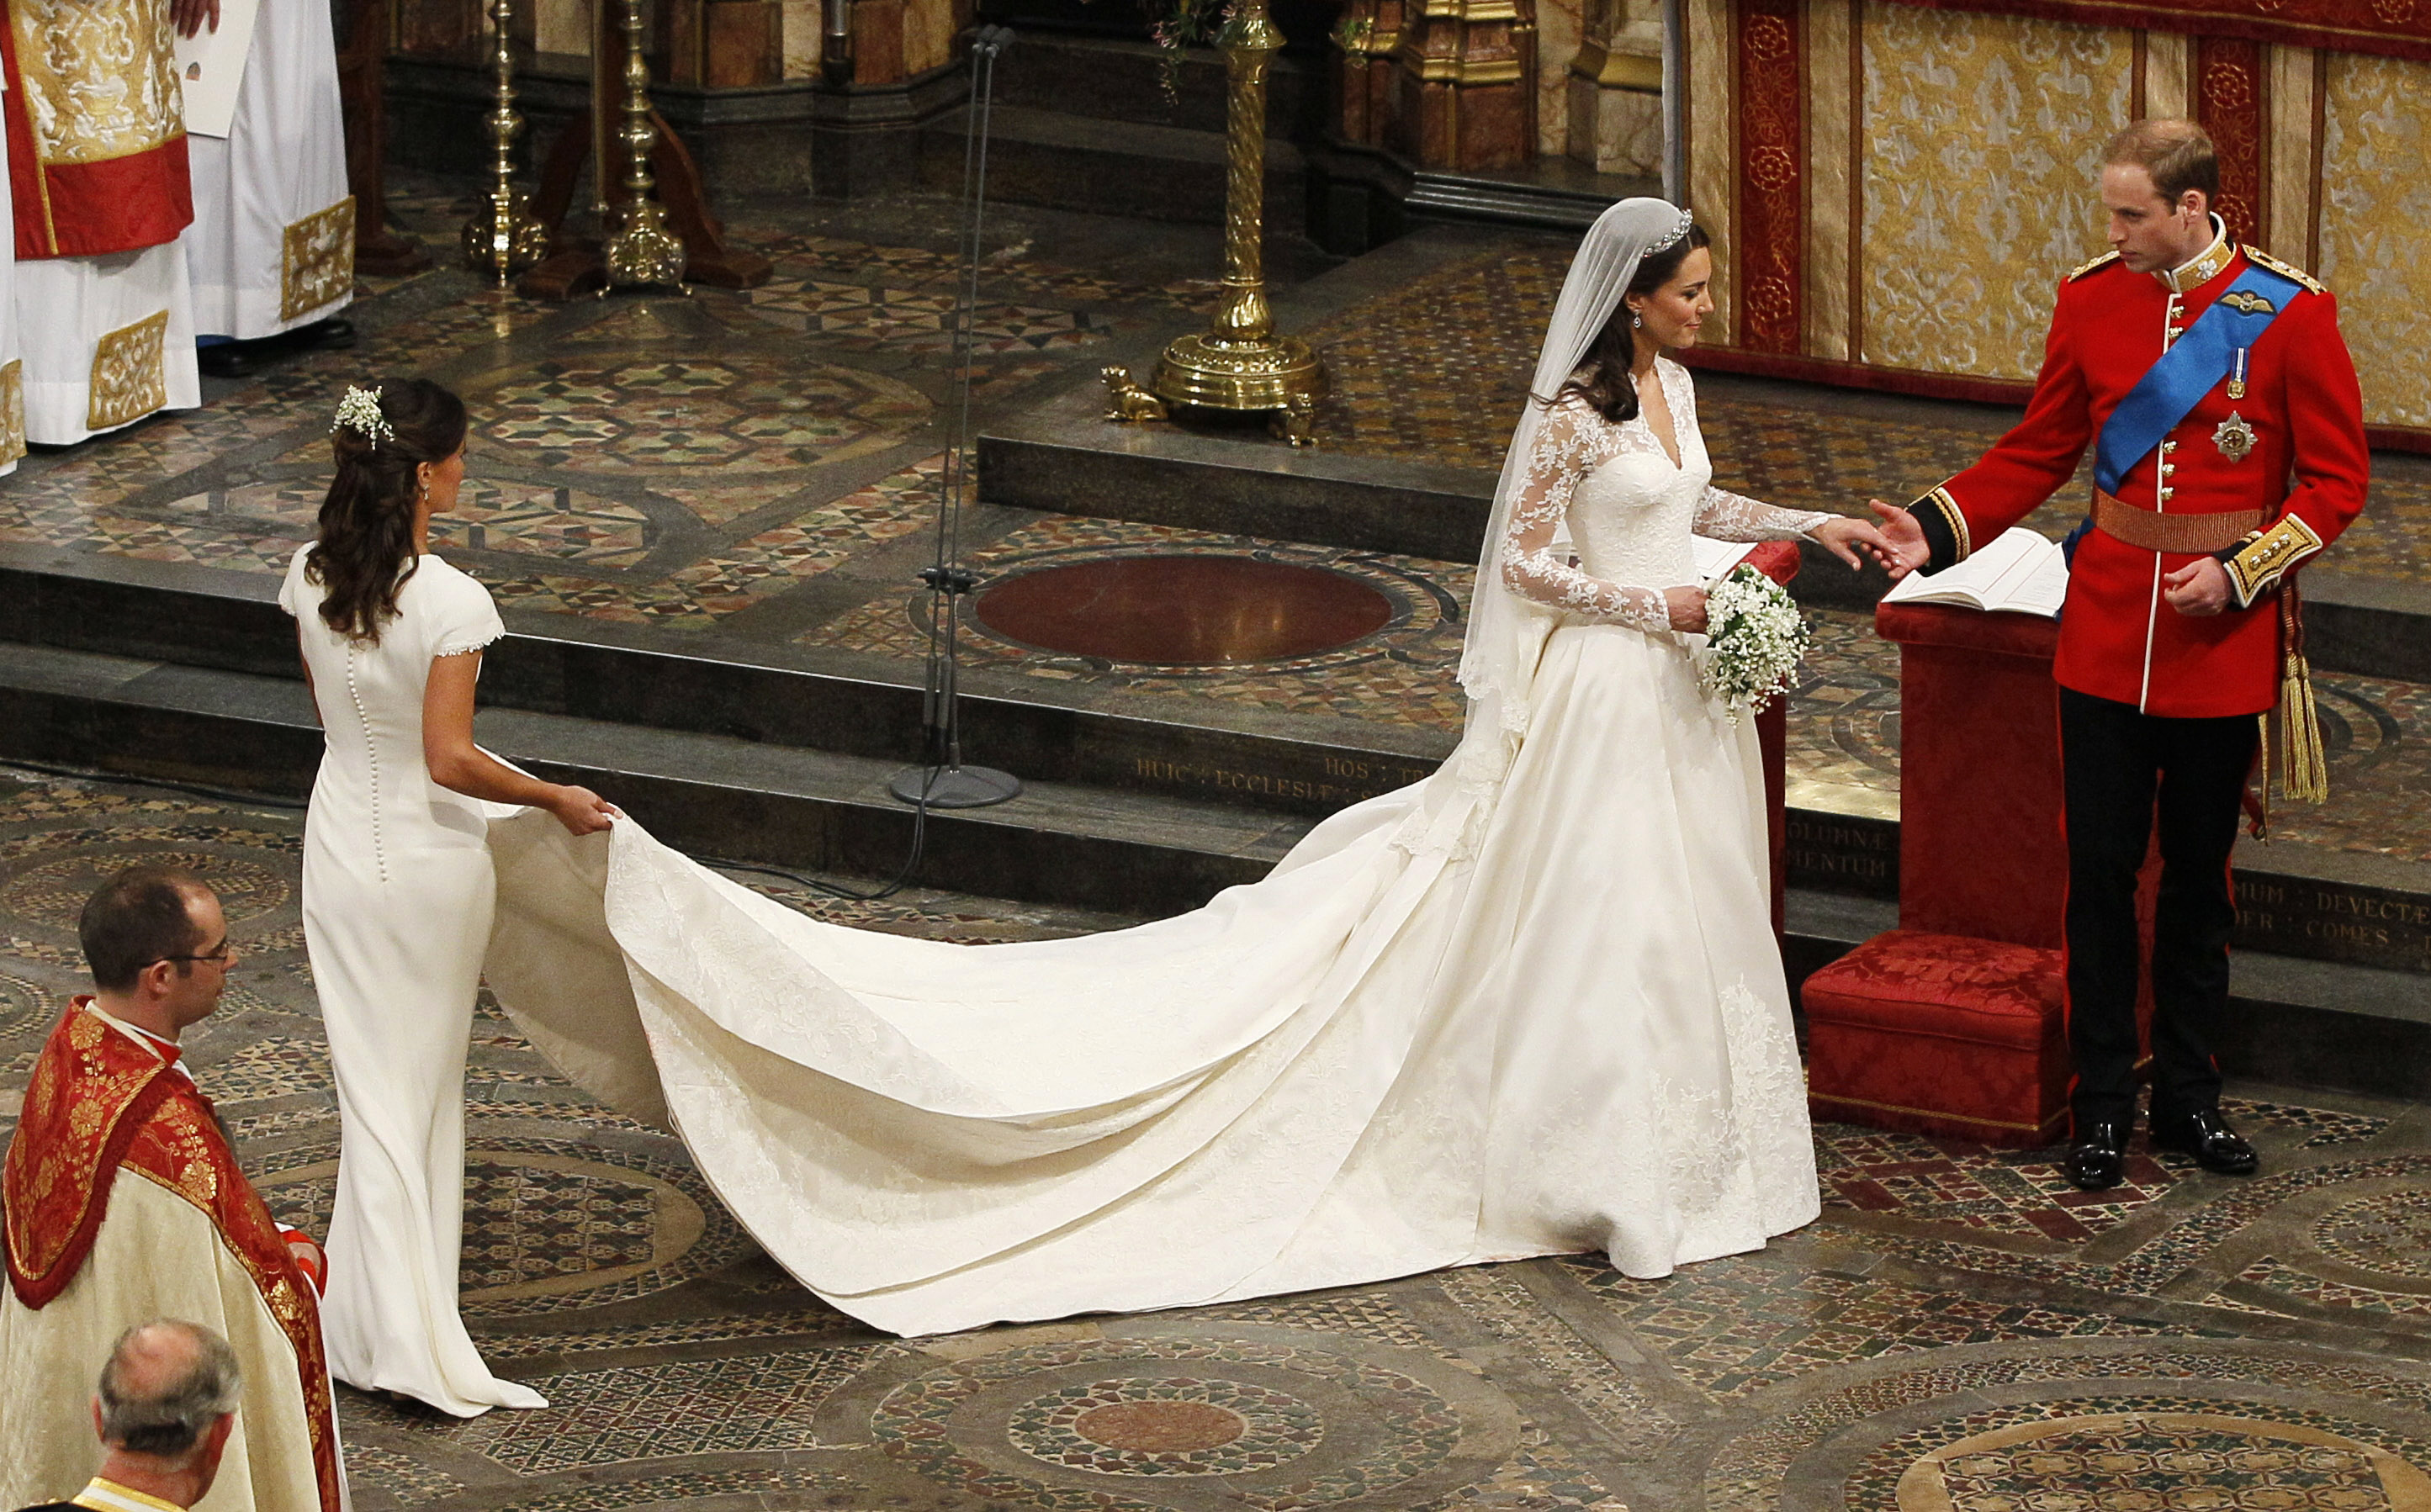 Royal wedding: The best dresses from Kate Middleton to Queen ...